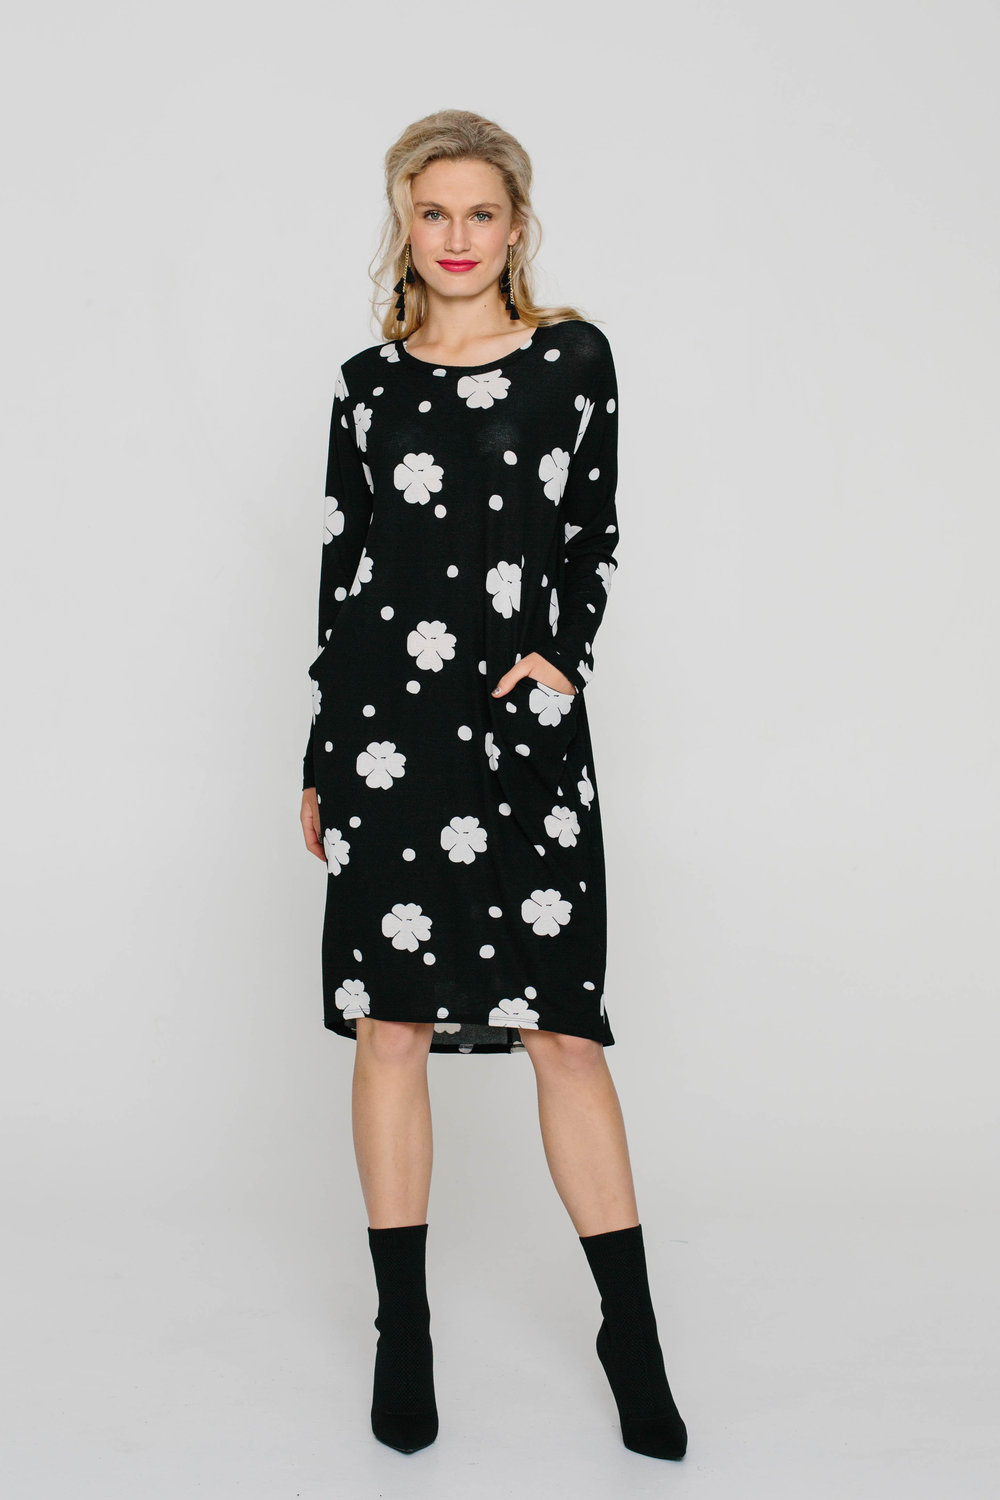 6163W Halo Dress Mary Quant Black